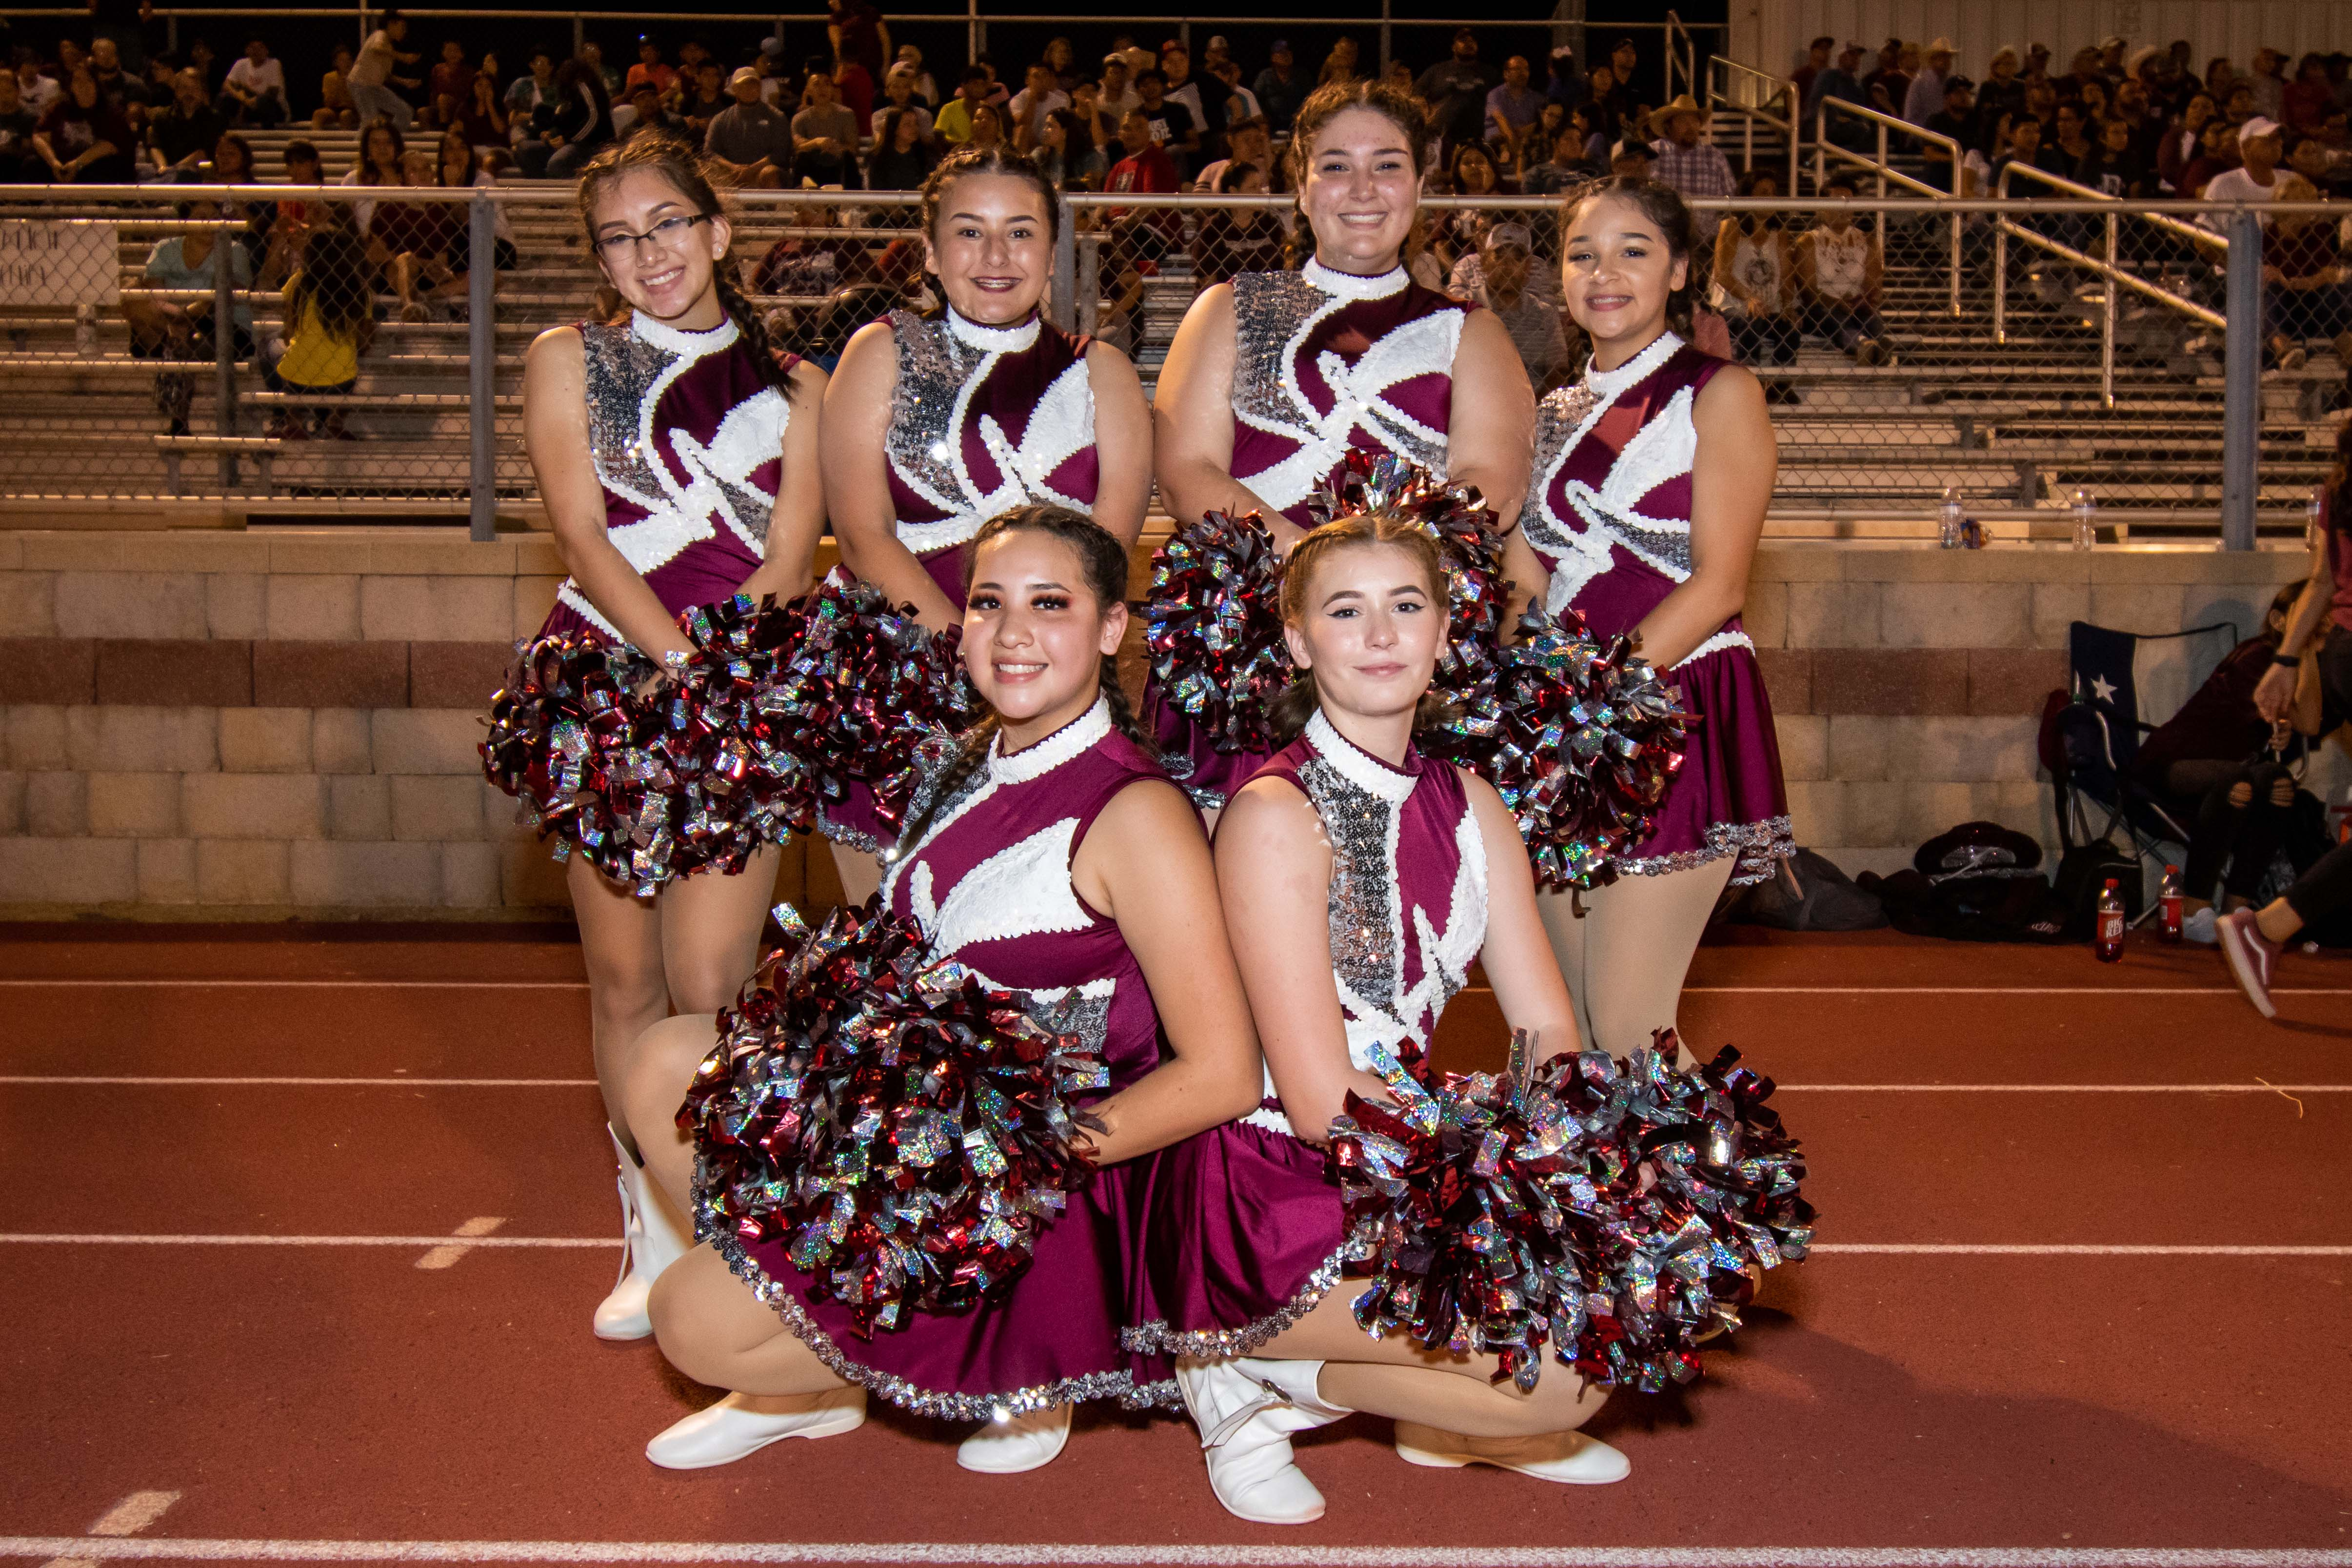 photo of the dance team